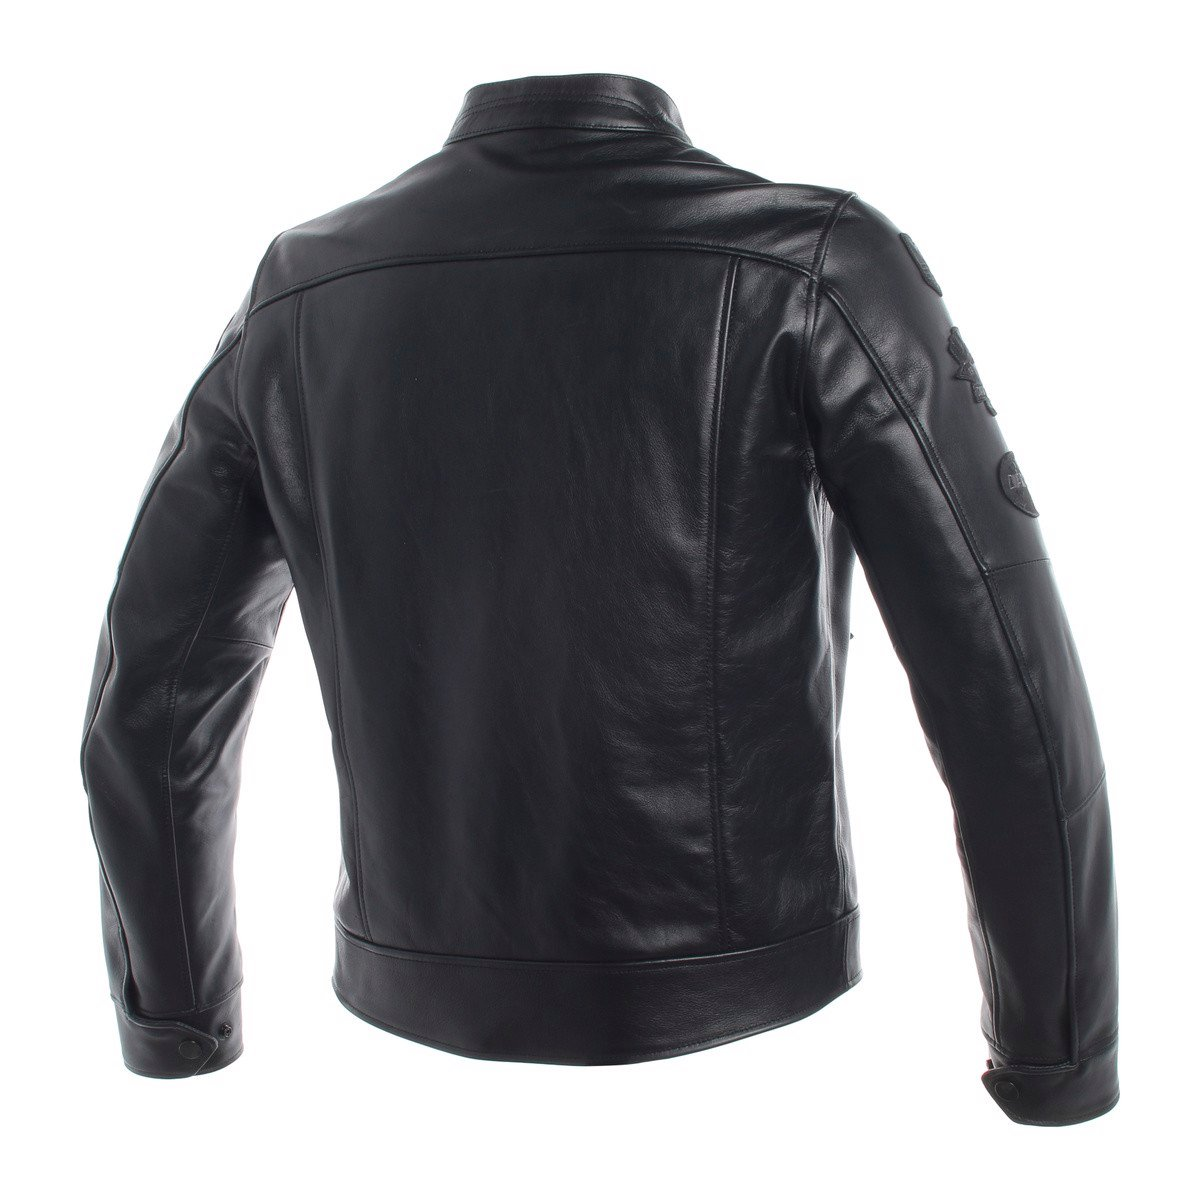 ÁO DA DAINESE LEGACY LEATHER JACKET